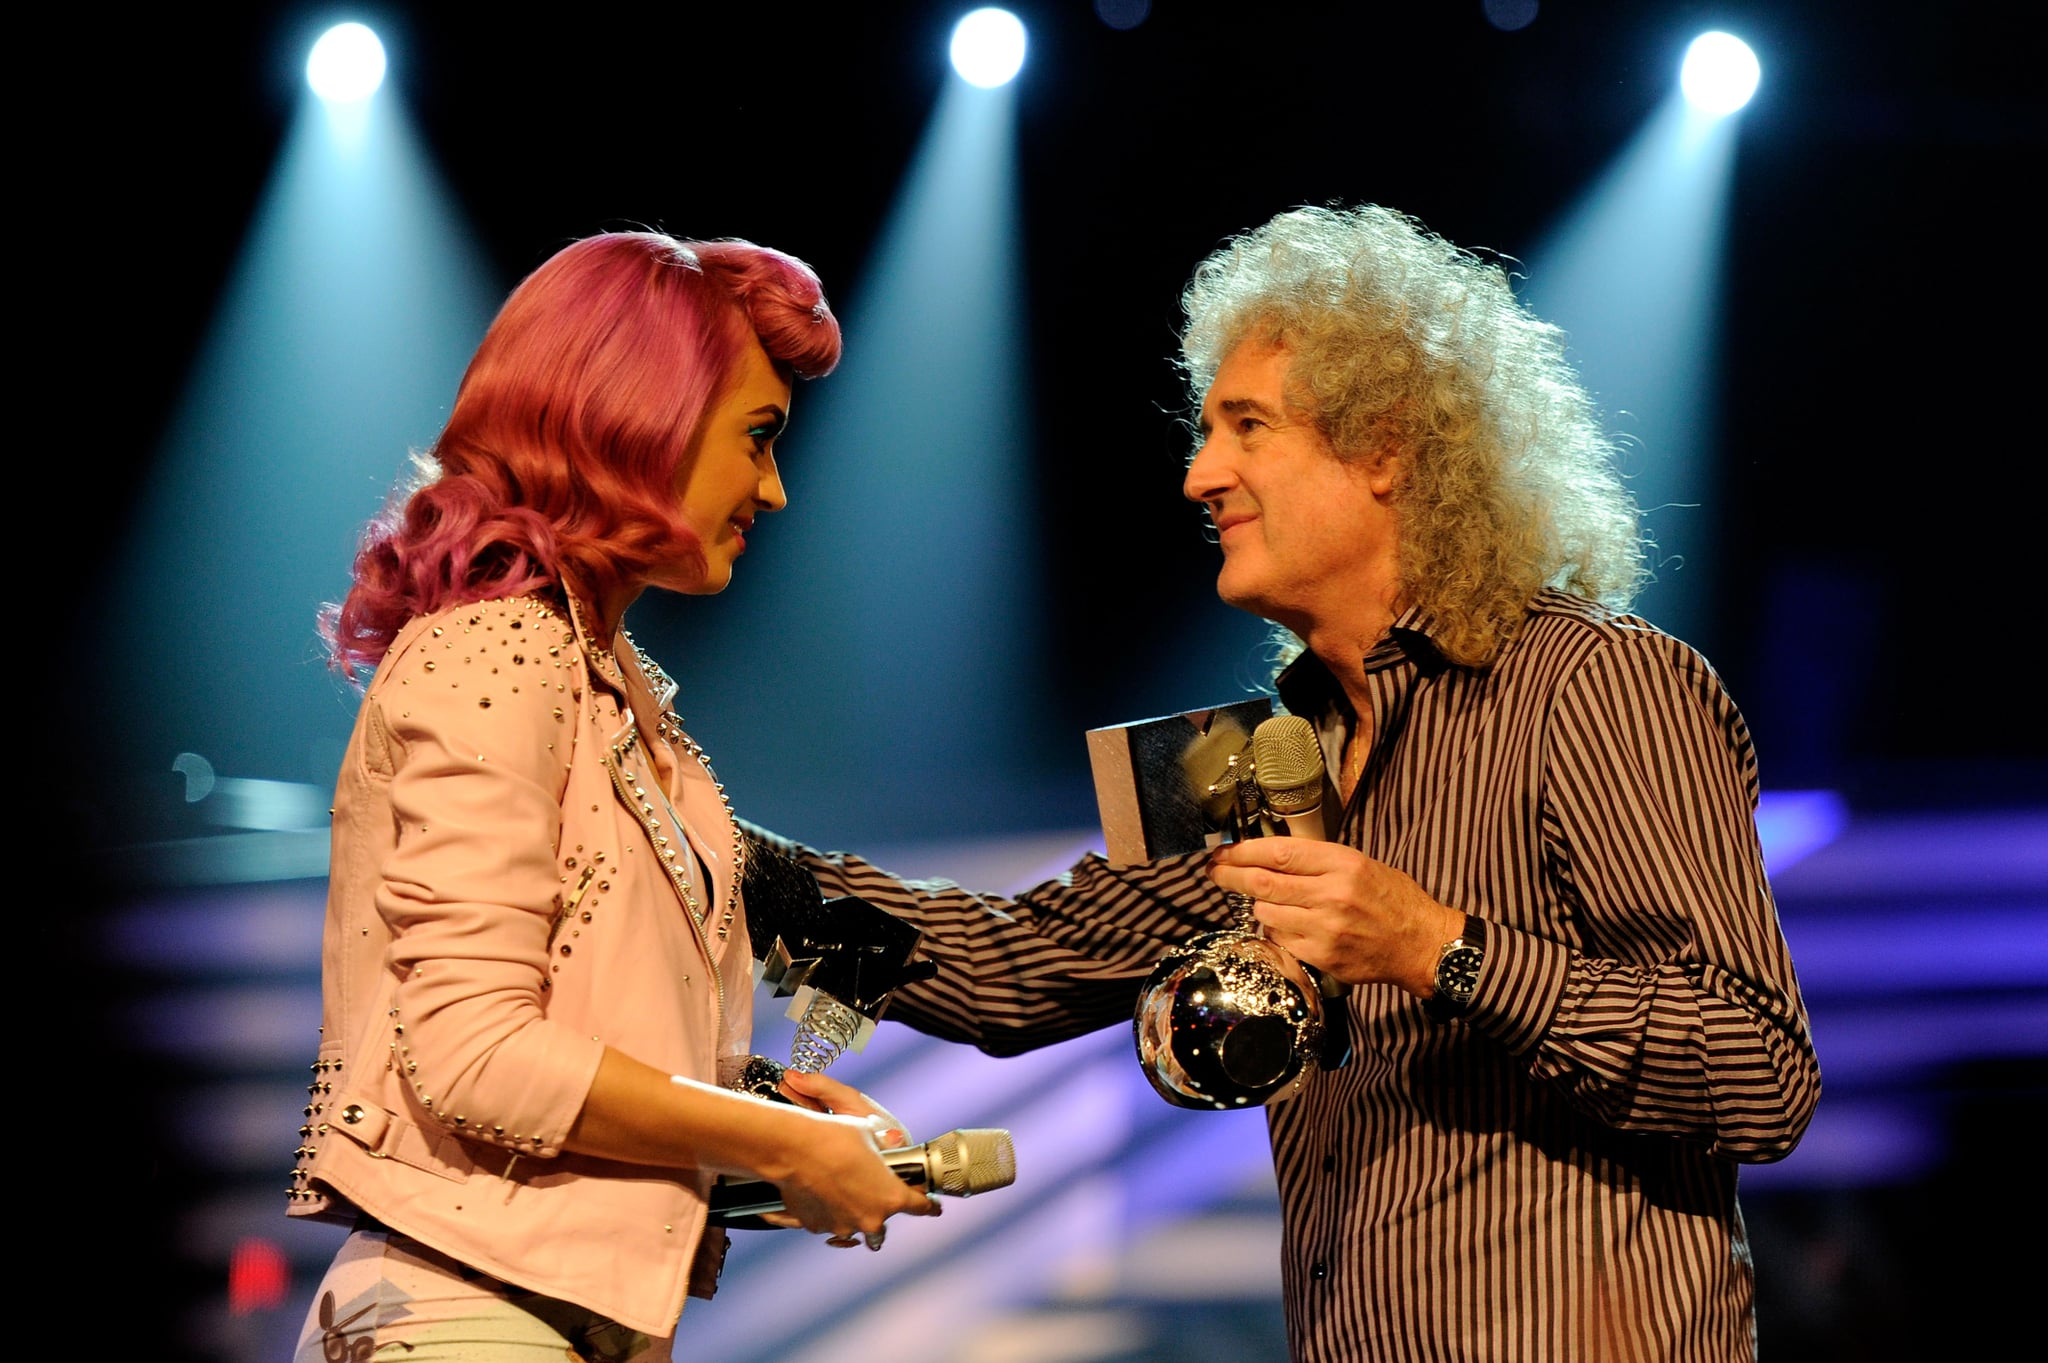 Katy presented Queen with an award.